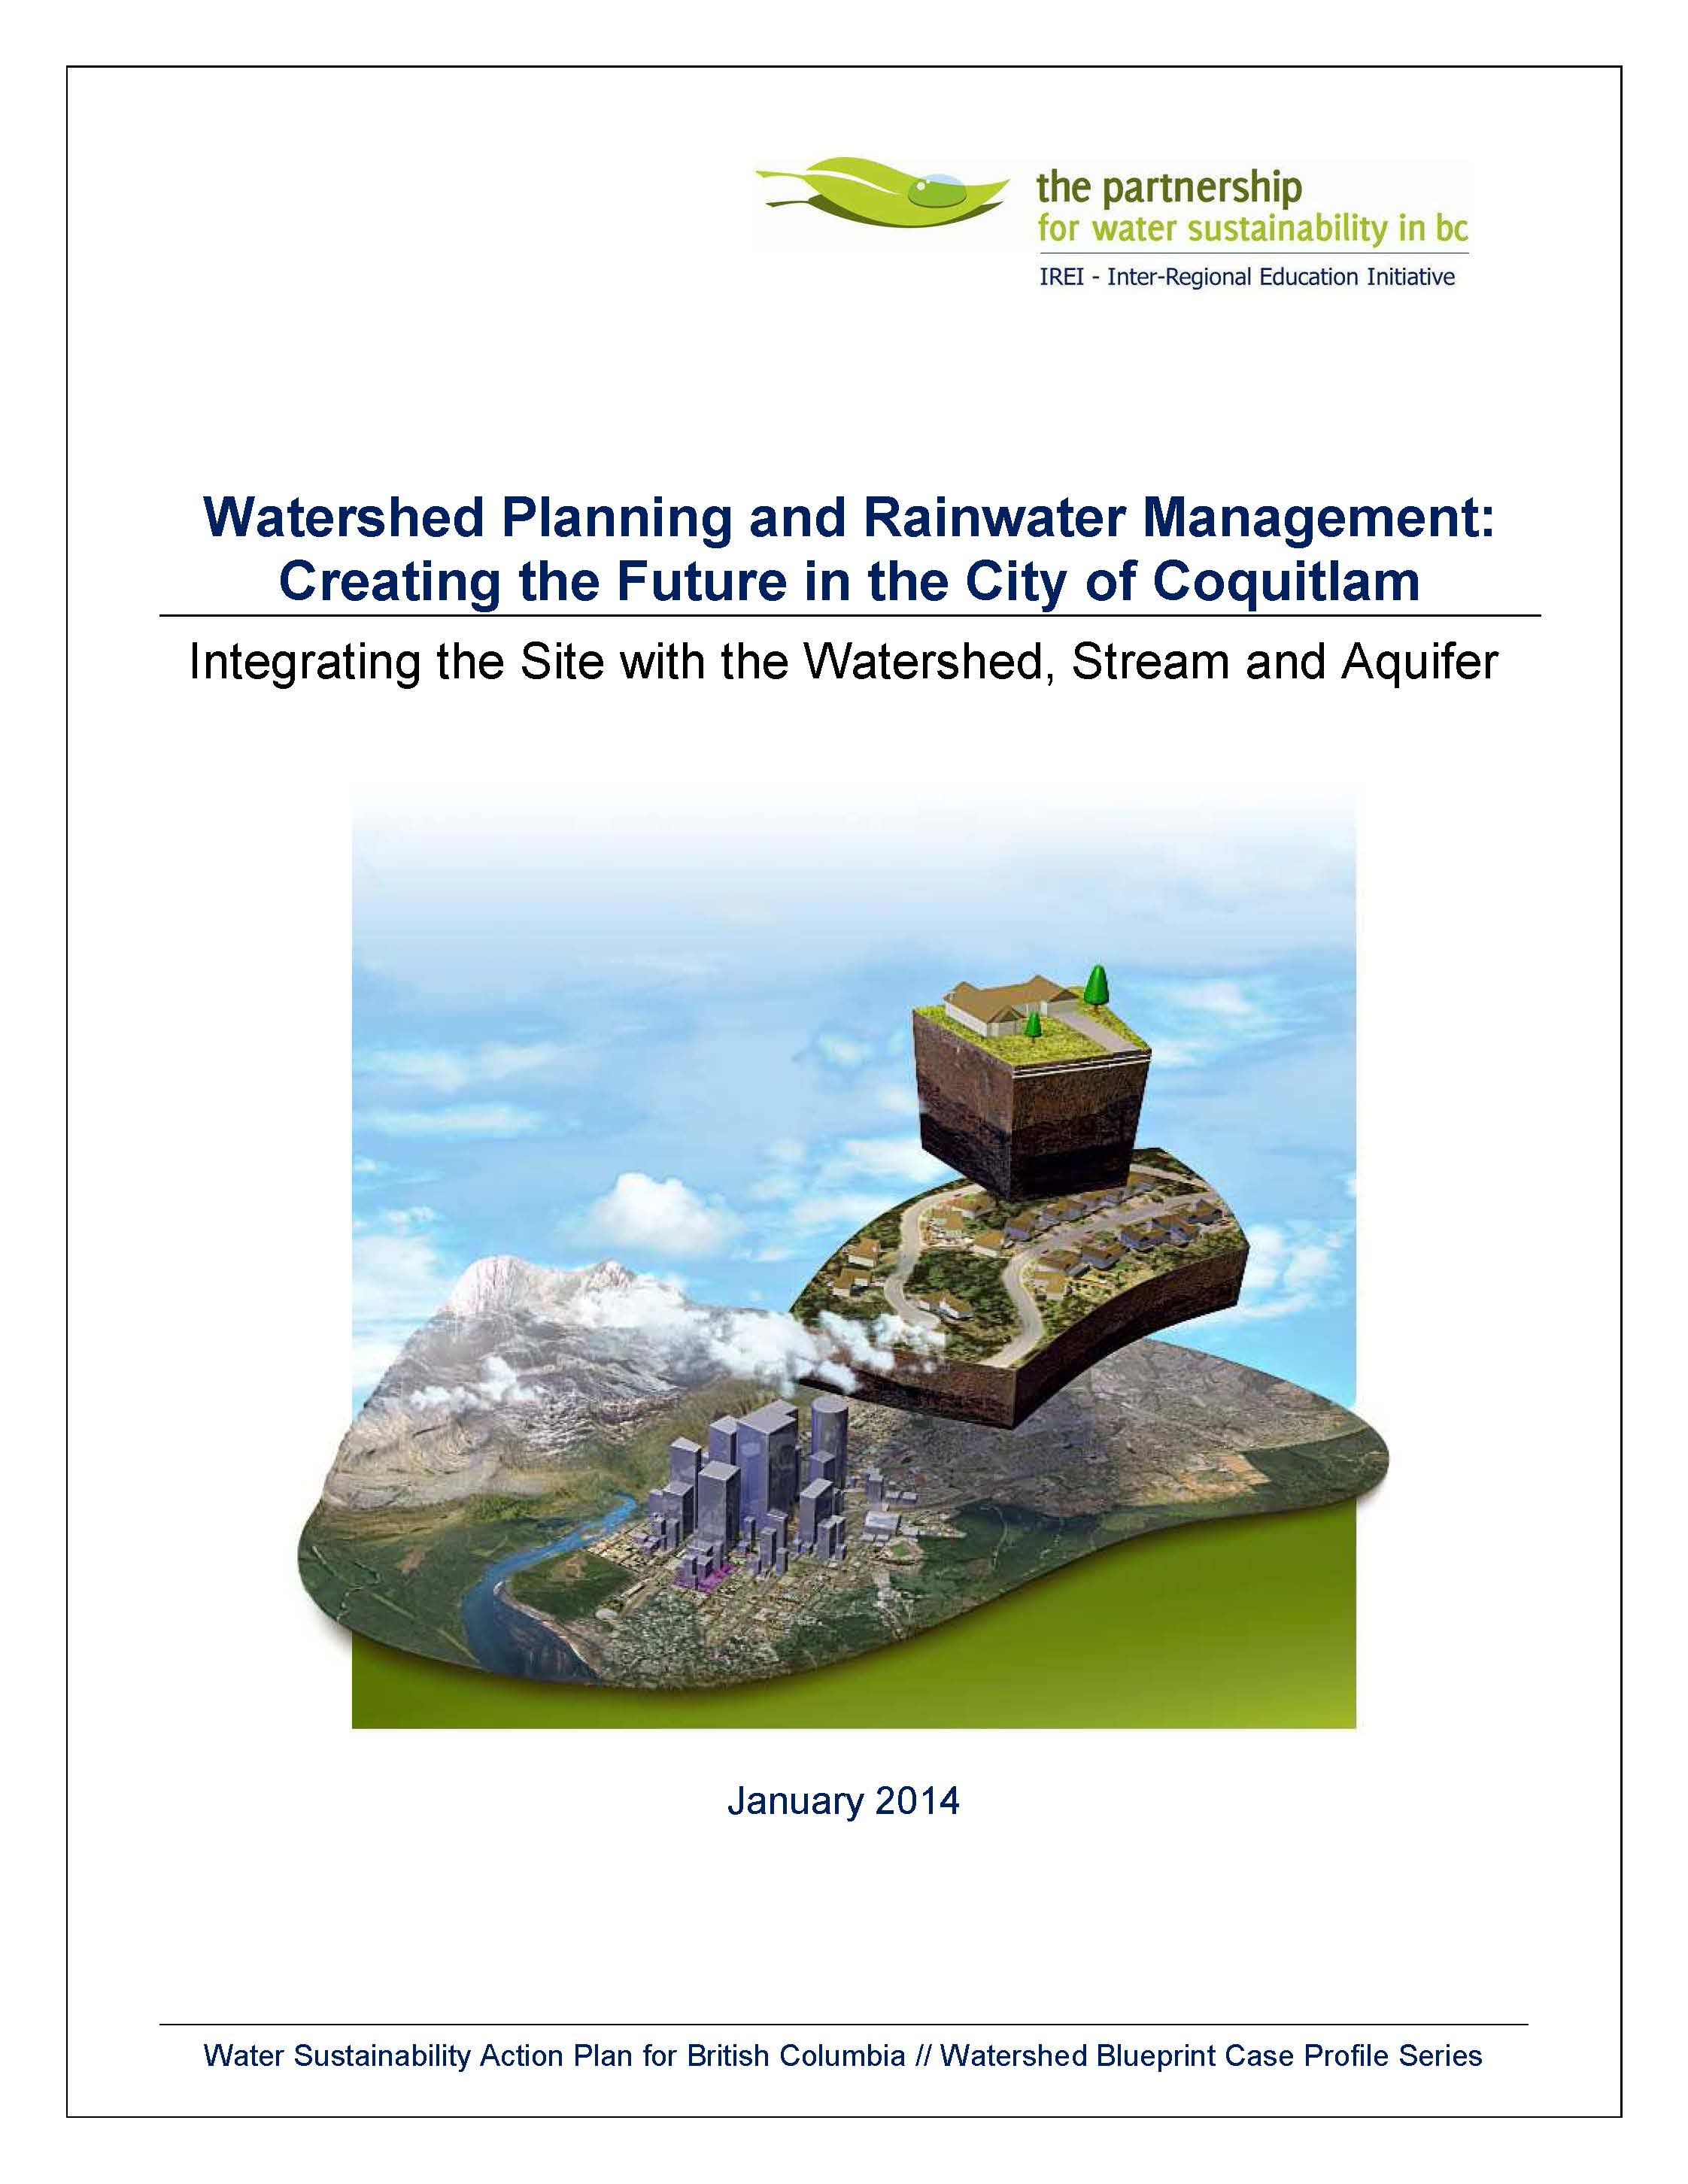 Coquitlam-Watershed-Planning-and-Rainwater-Management-Article-Jan-2014_cover